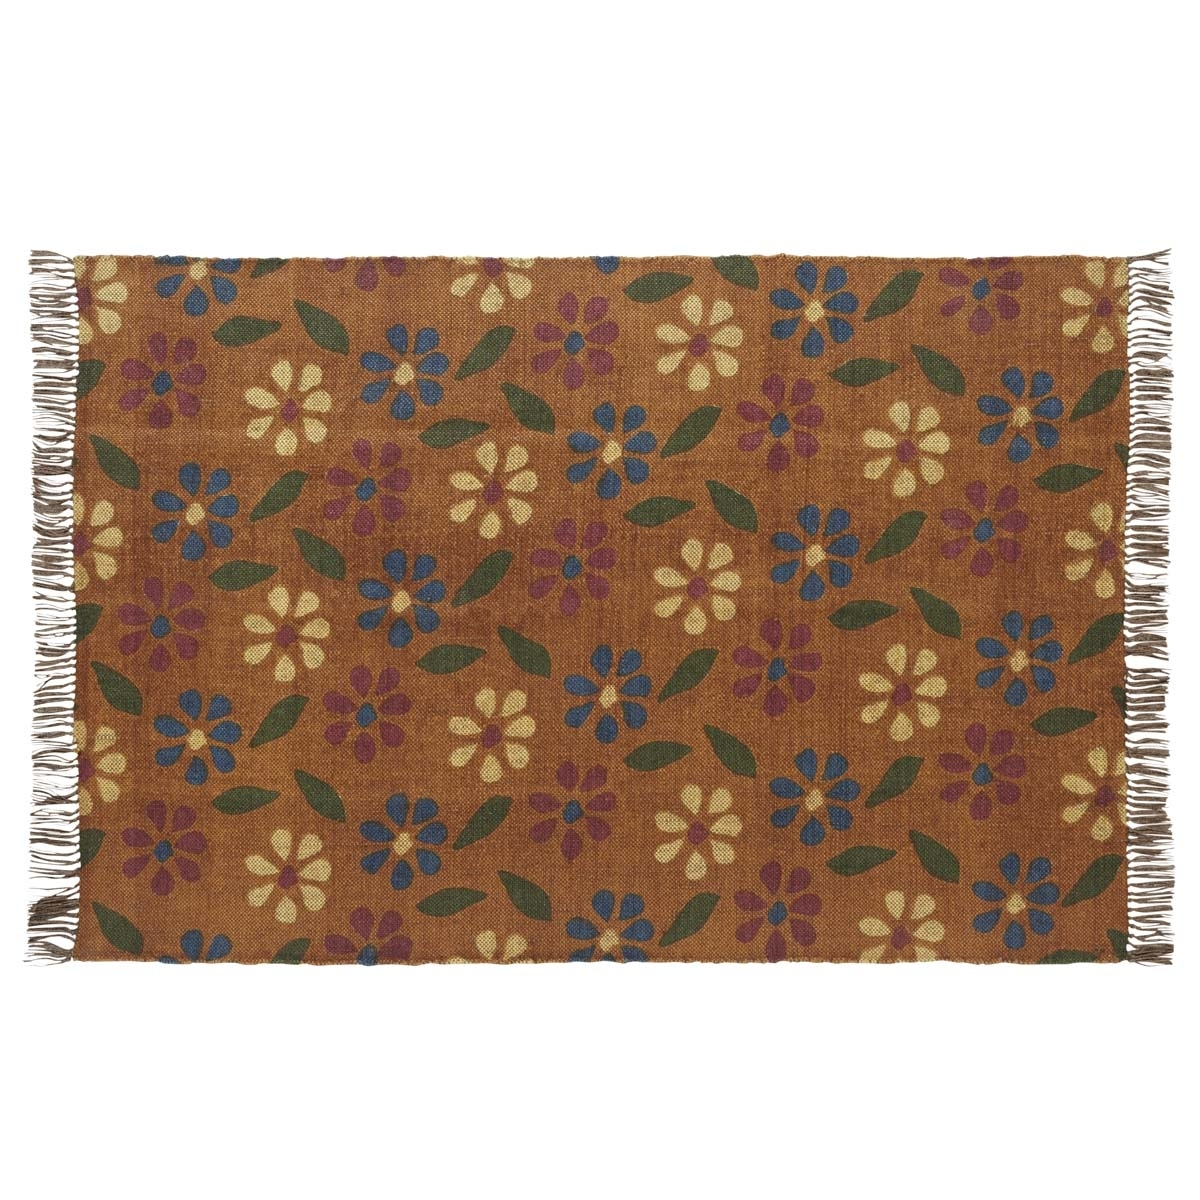 Farmhouse Rugs Somerville Printed Orange Rectangle Kilim Rug